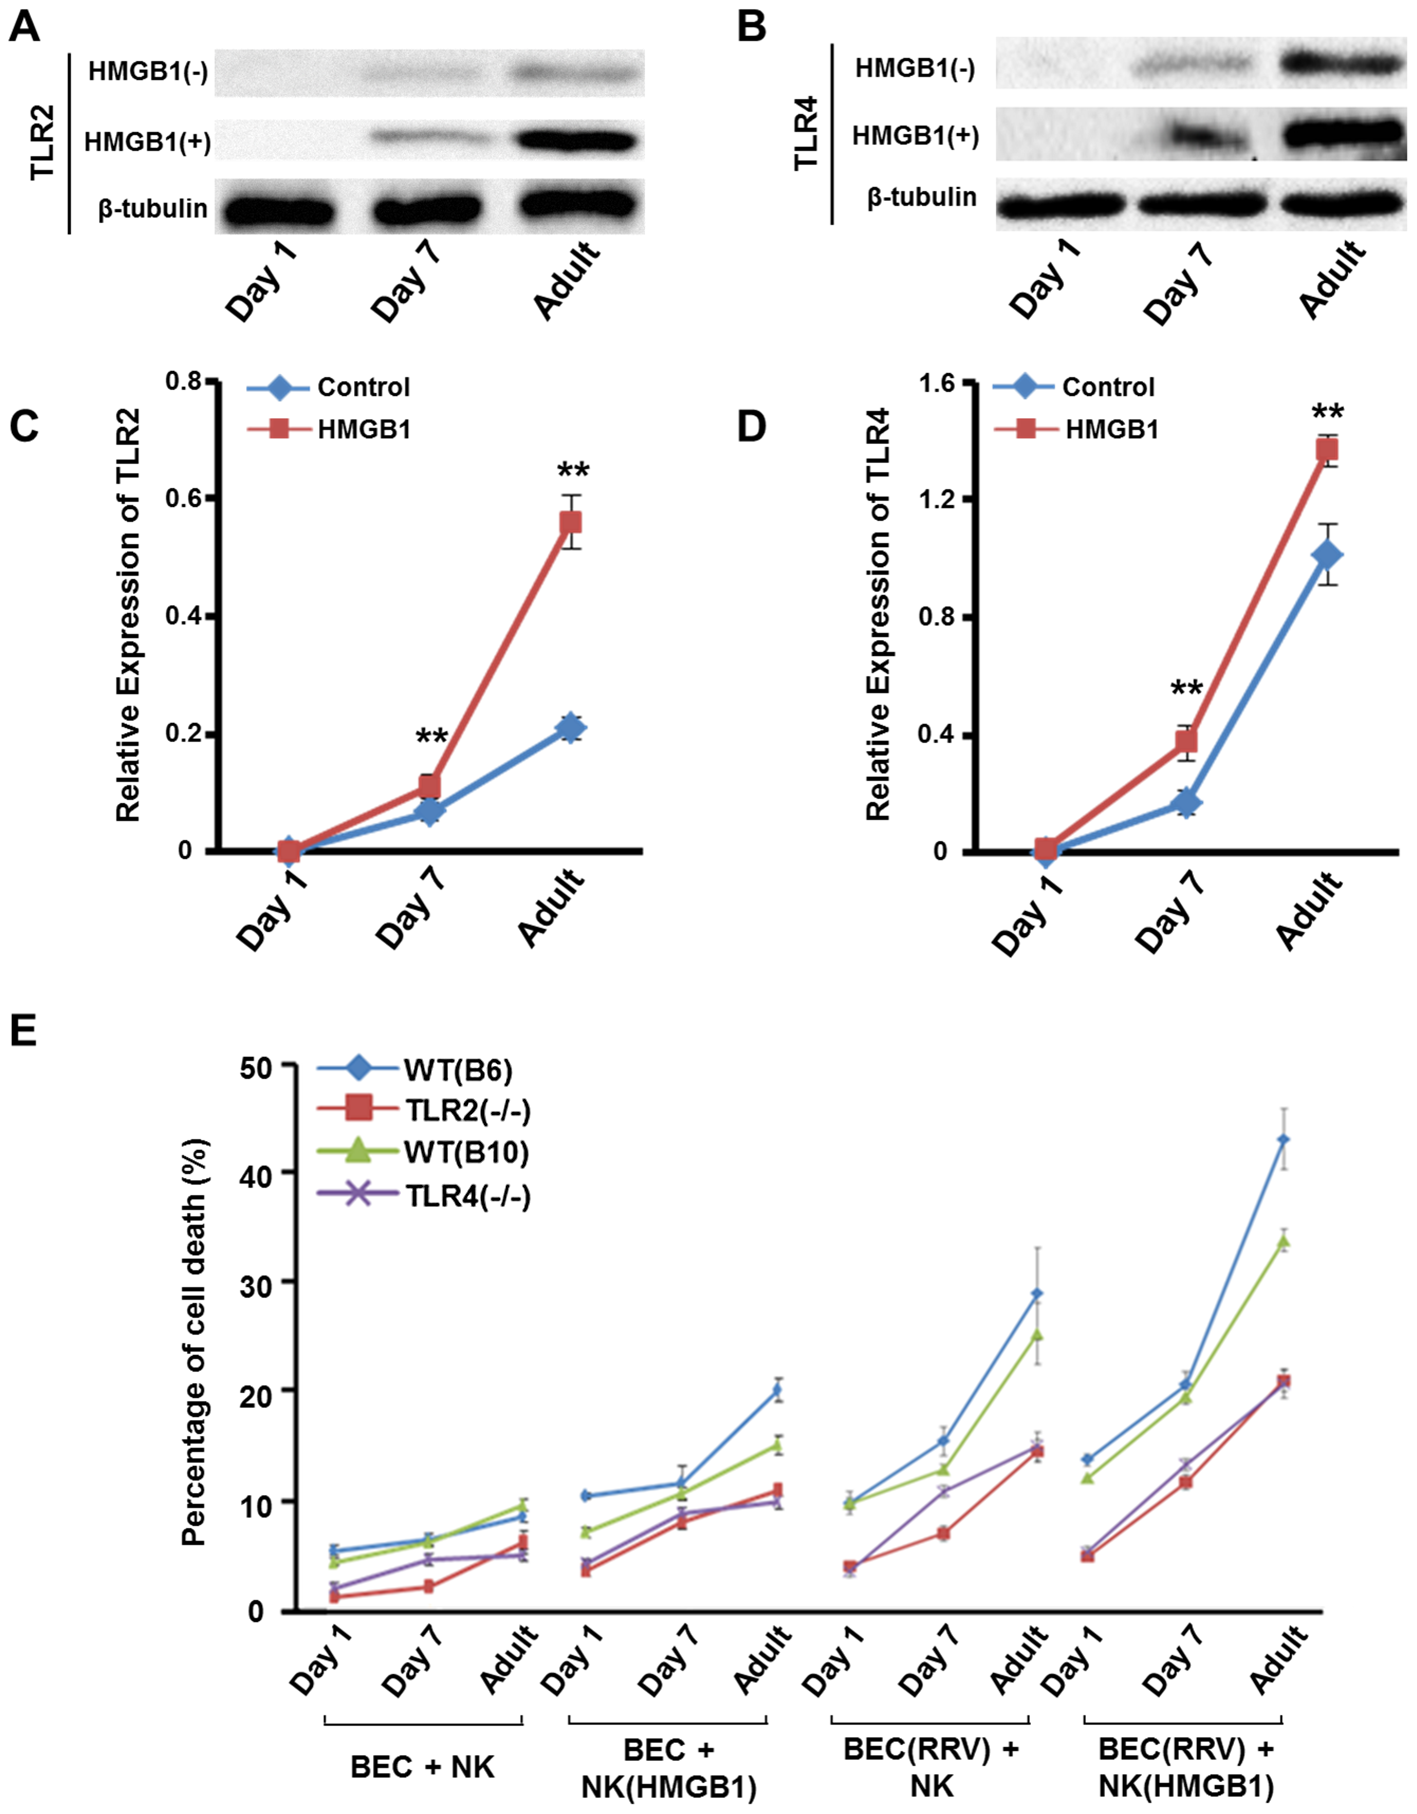 Expression of TLR2/TLR4 and NK cell cytotoxicity increases as mice age.